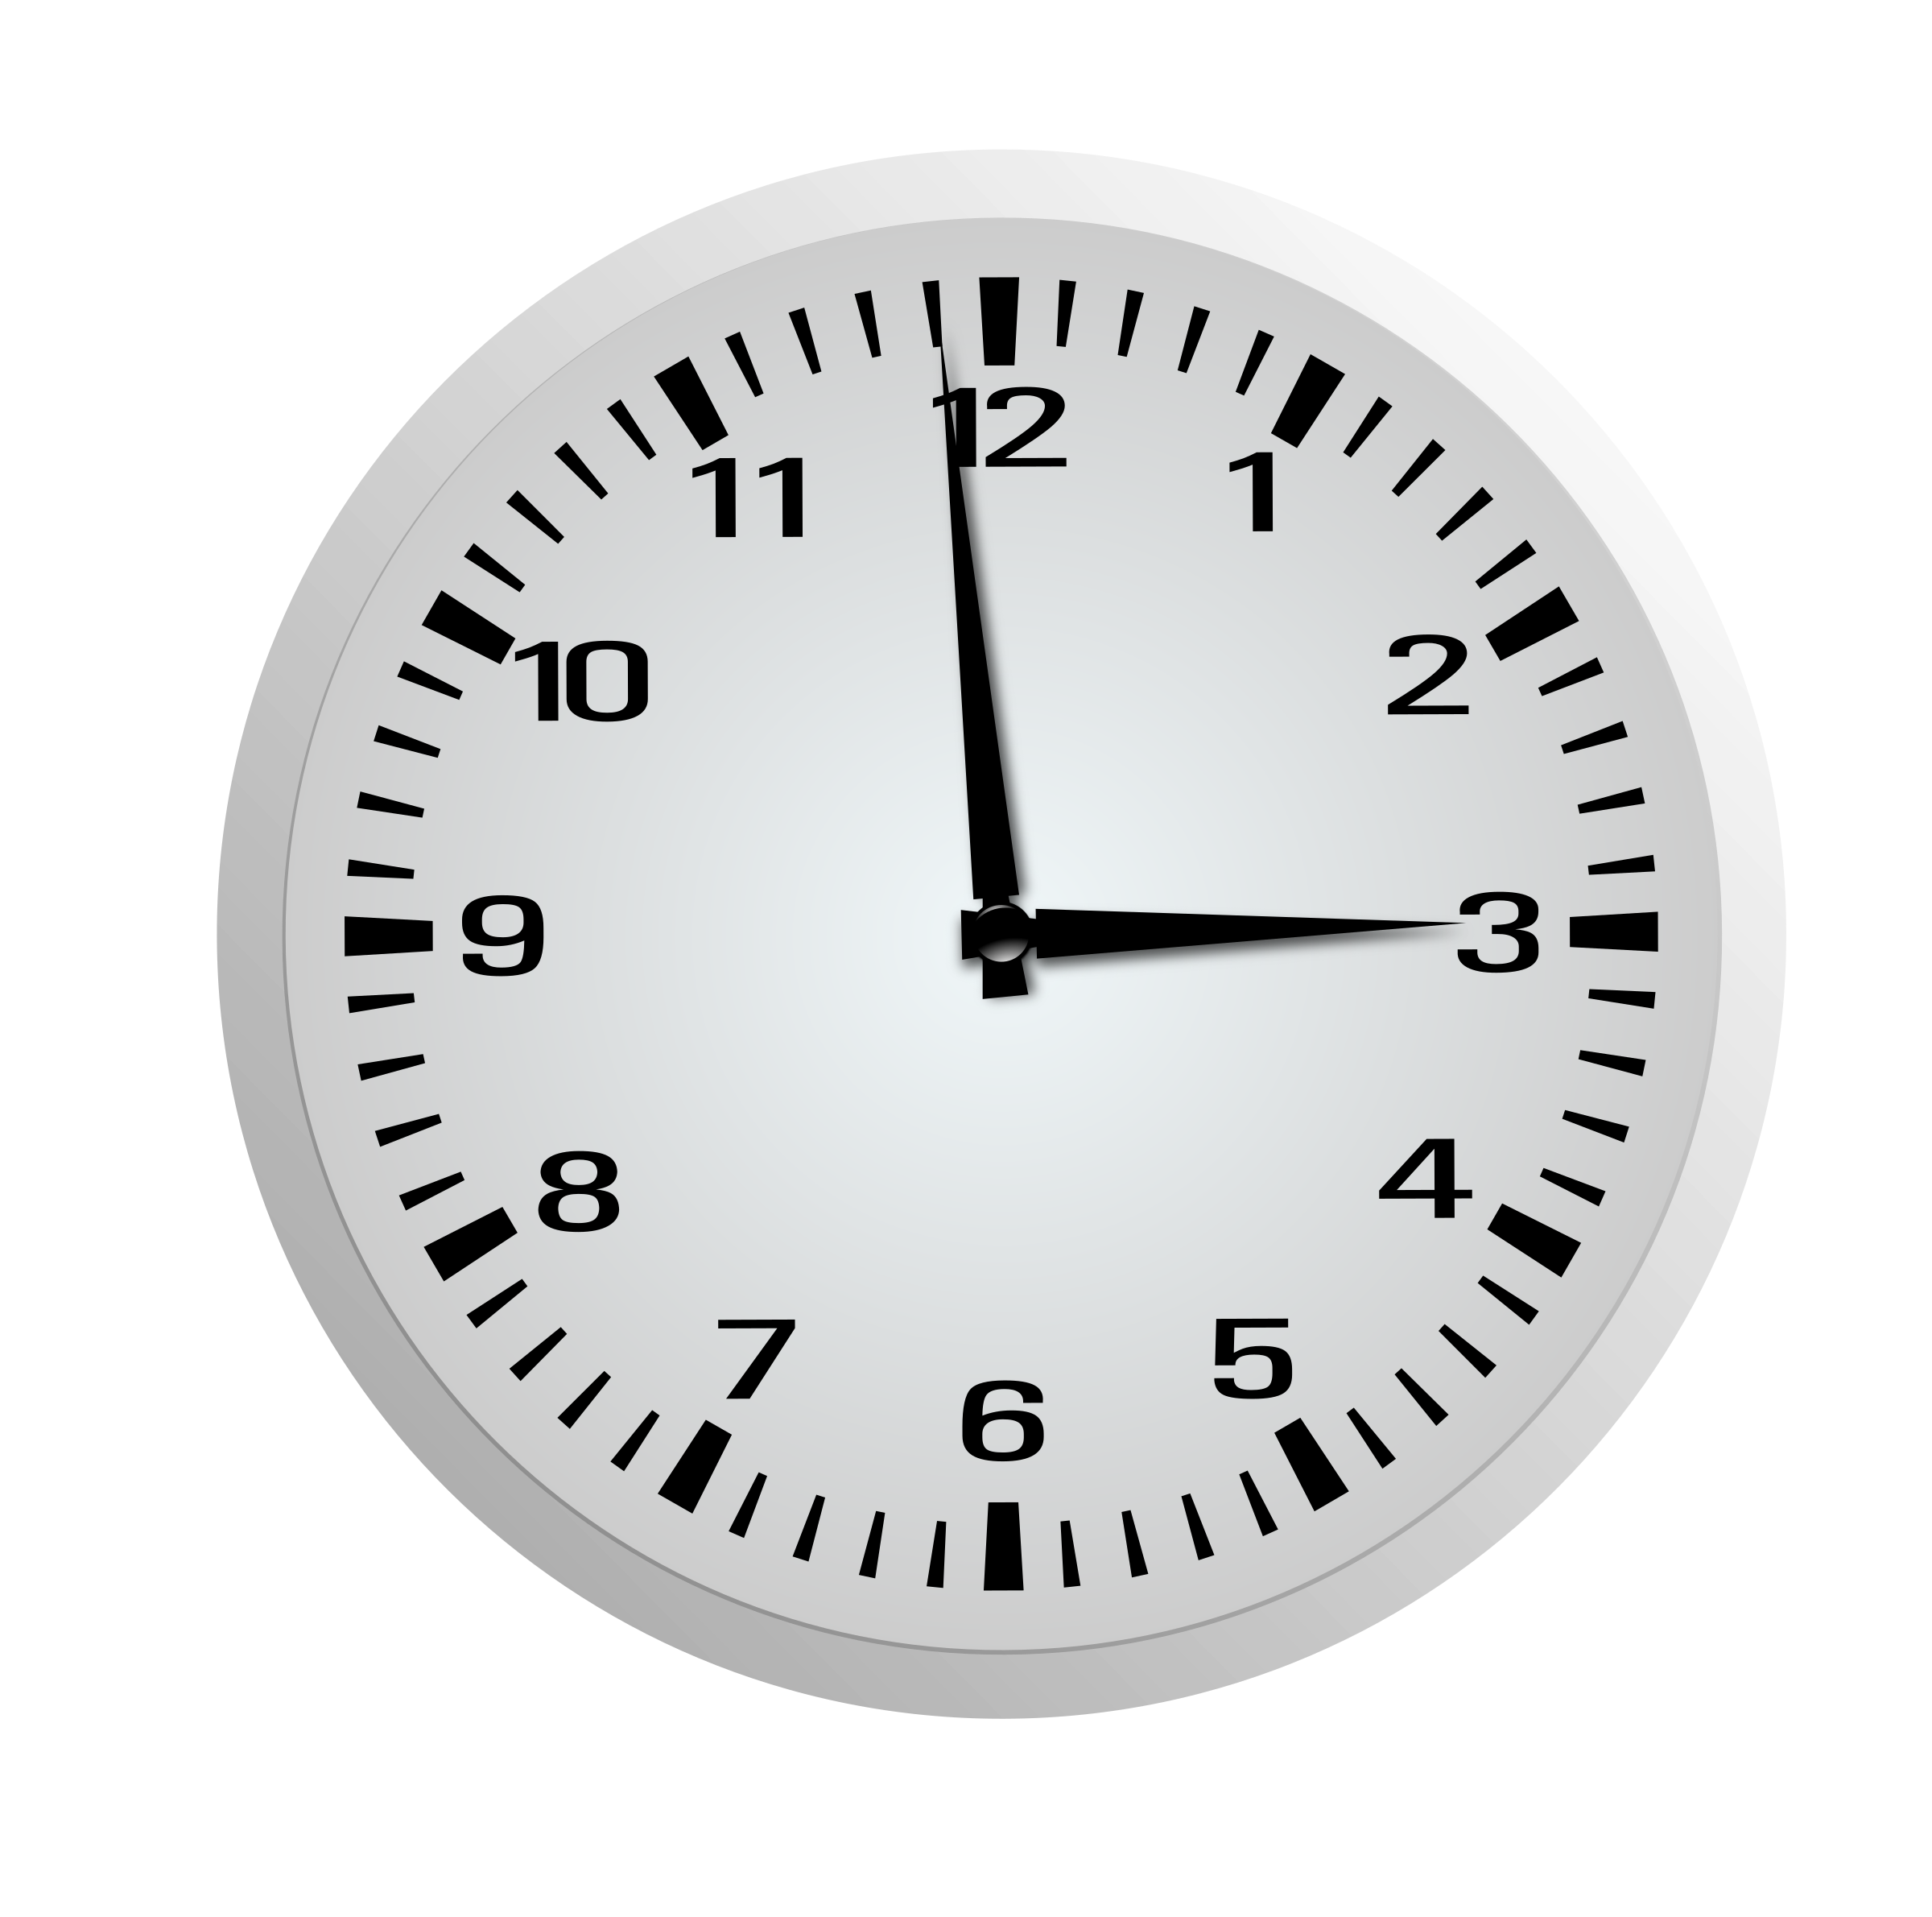 One minute before three. Clock clipart tick tock